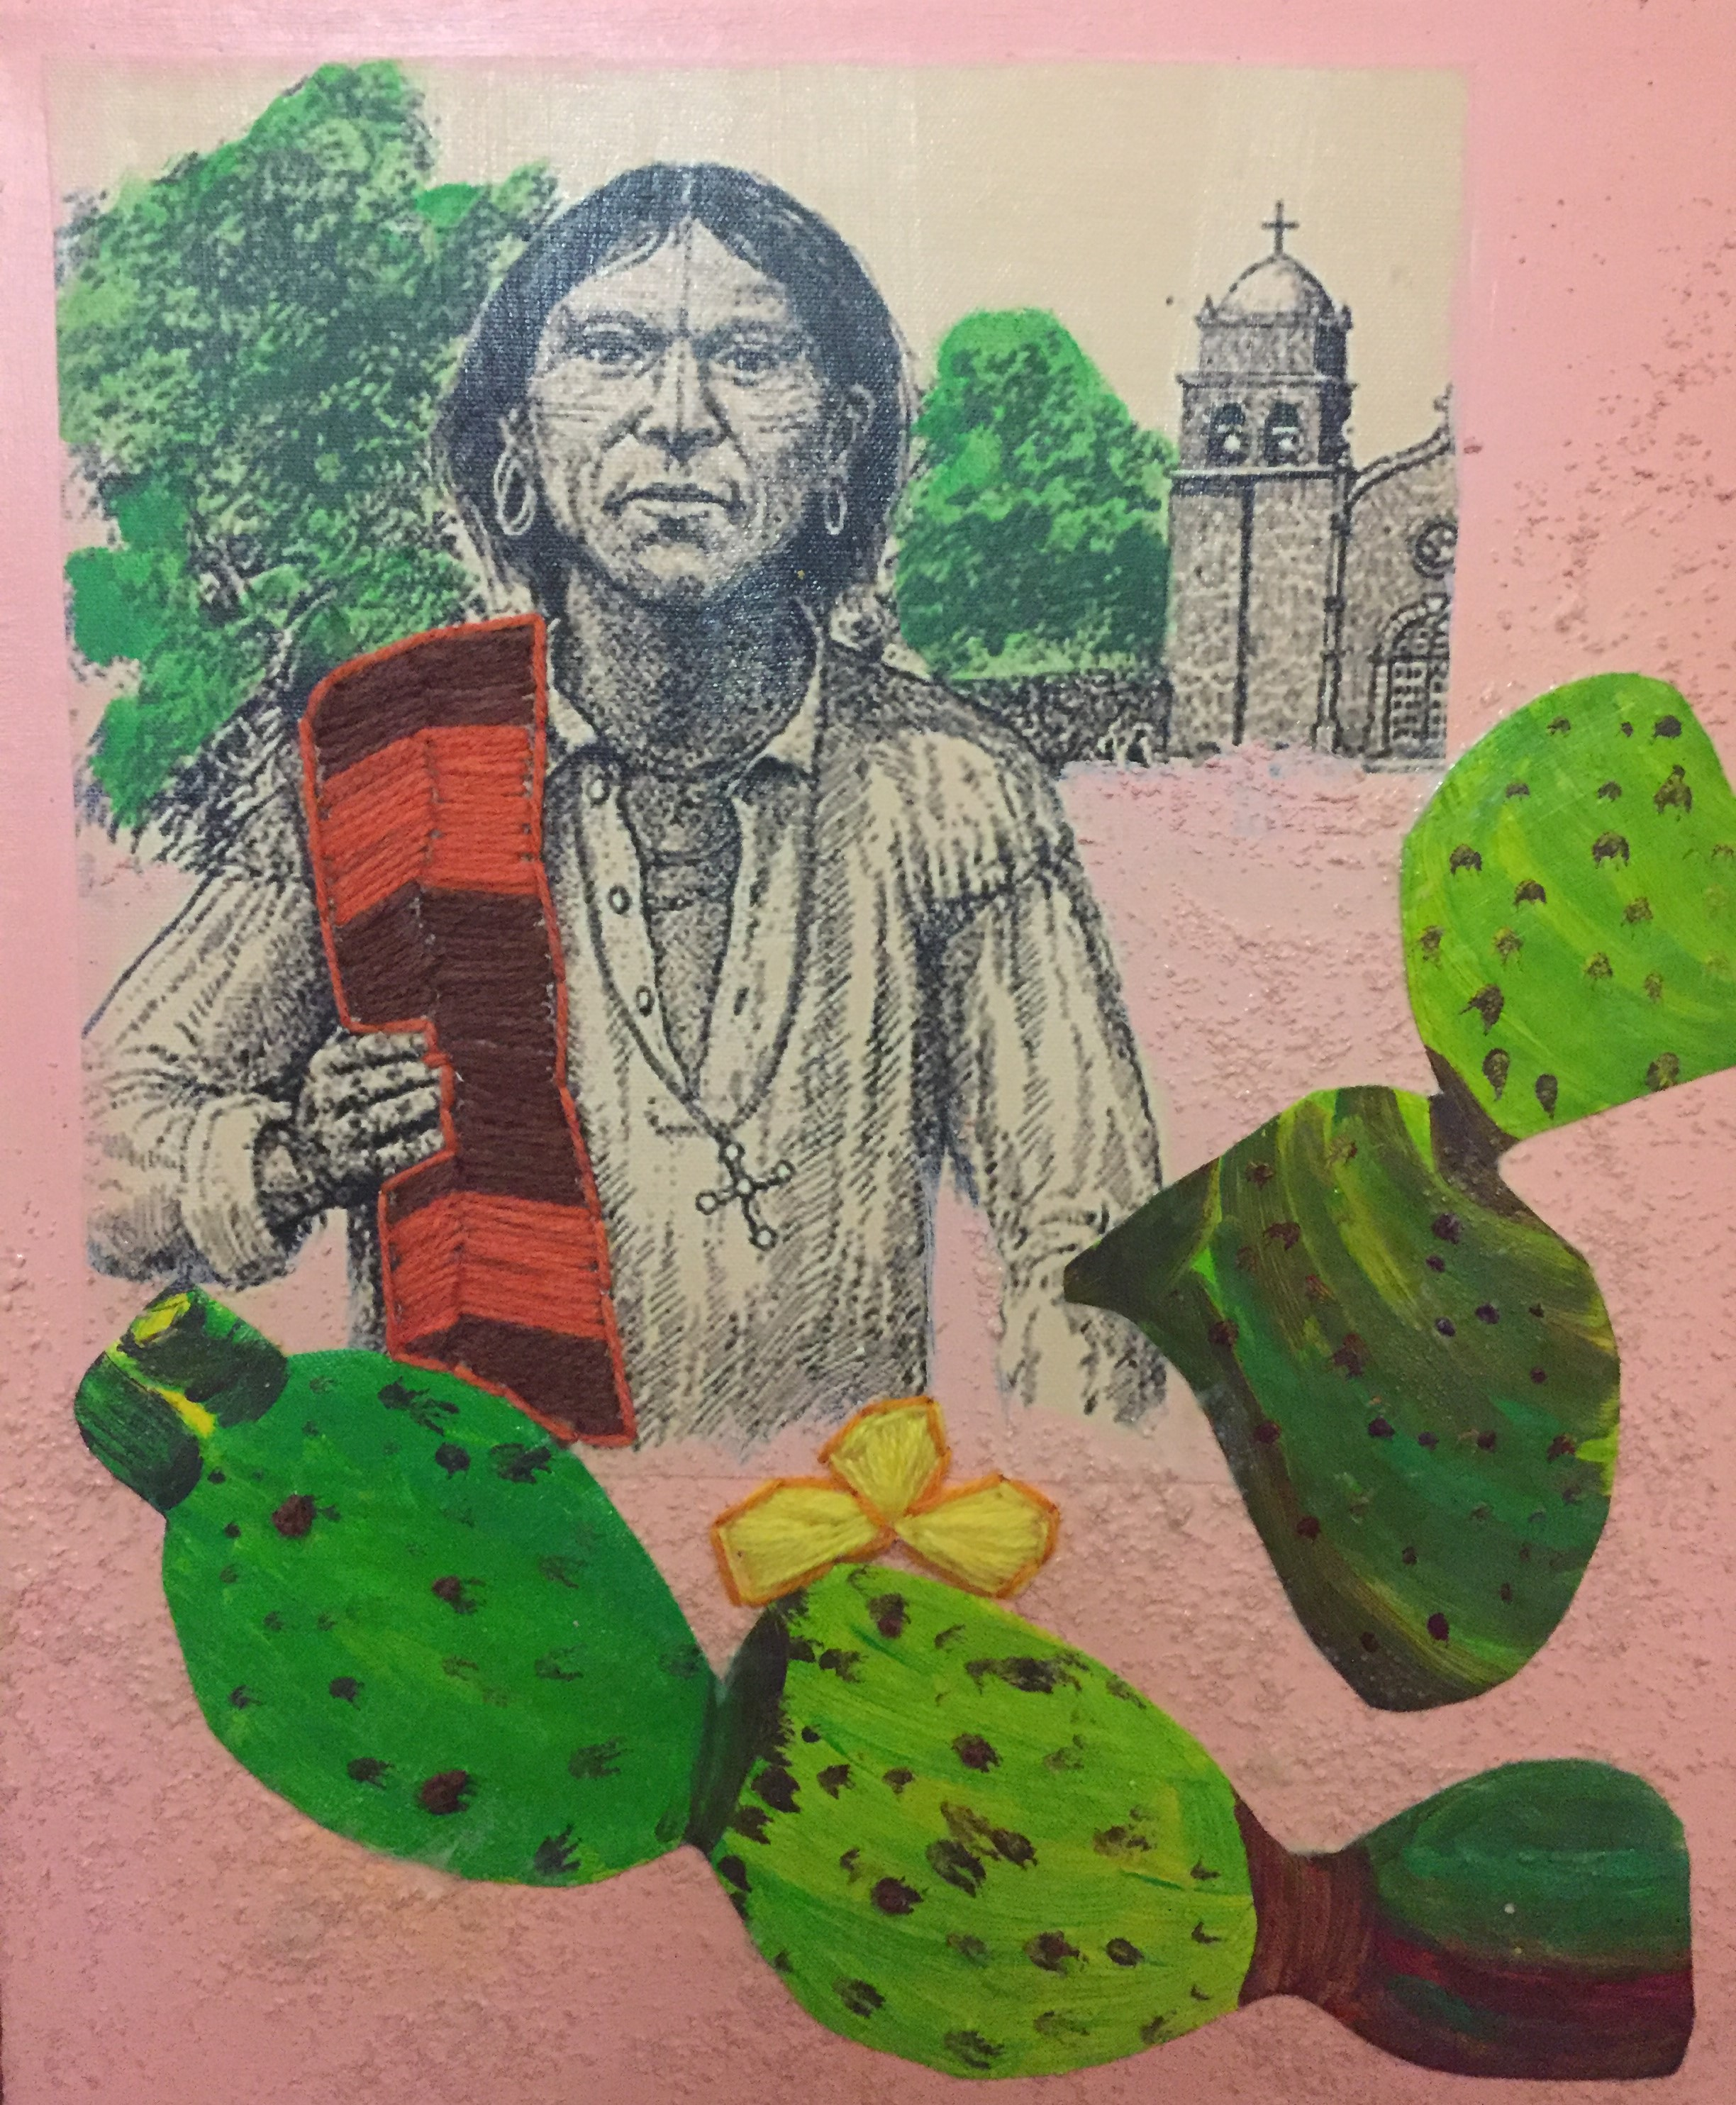 Coahuiltecan Tribe in San Antonio